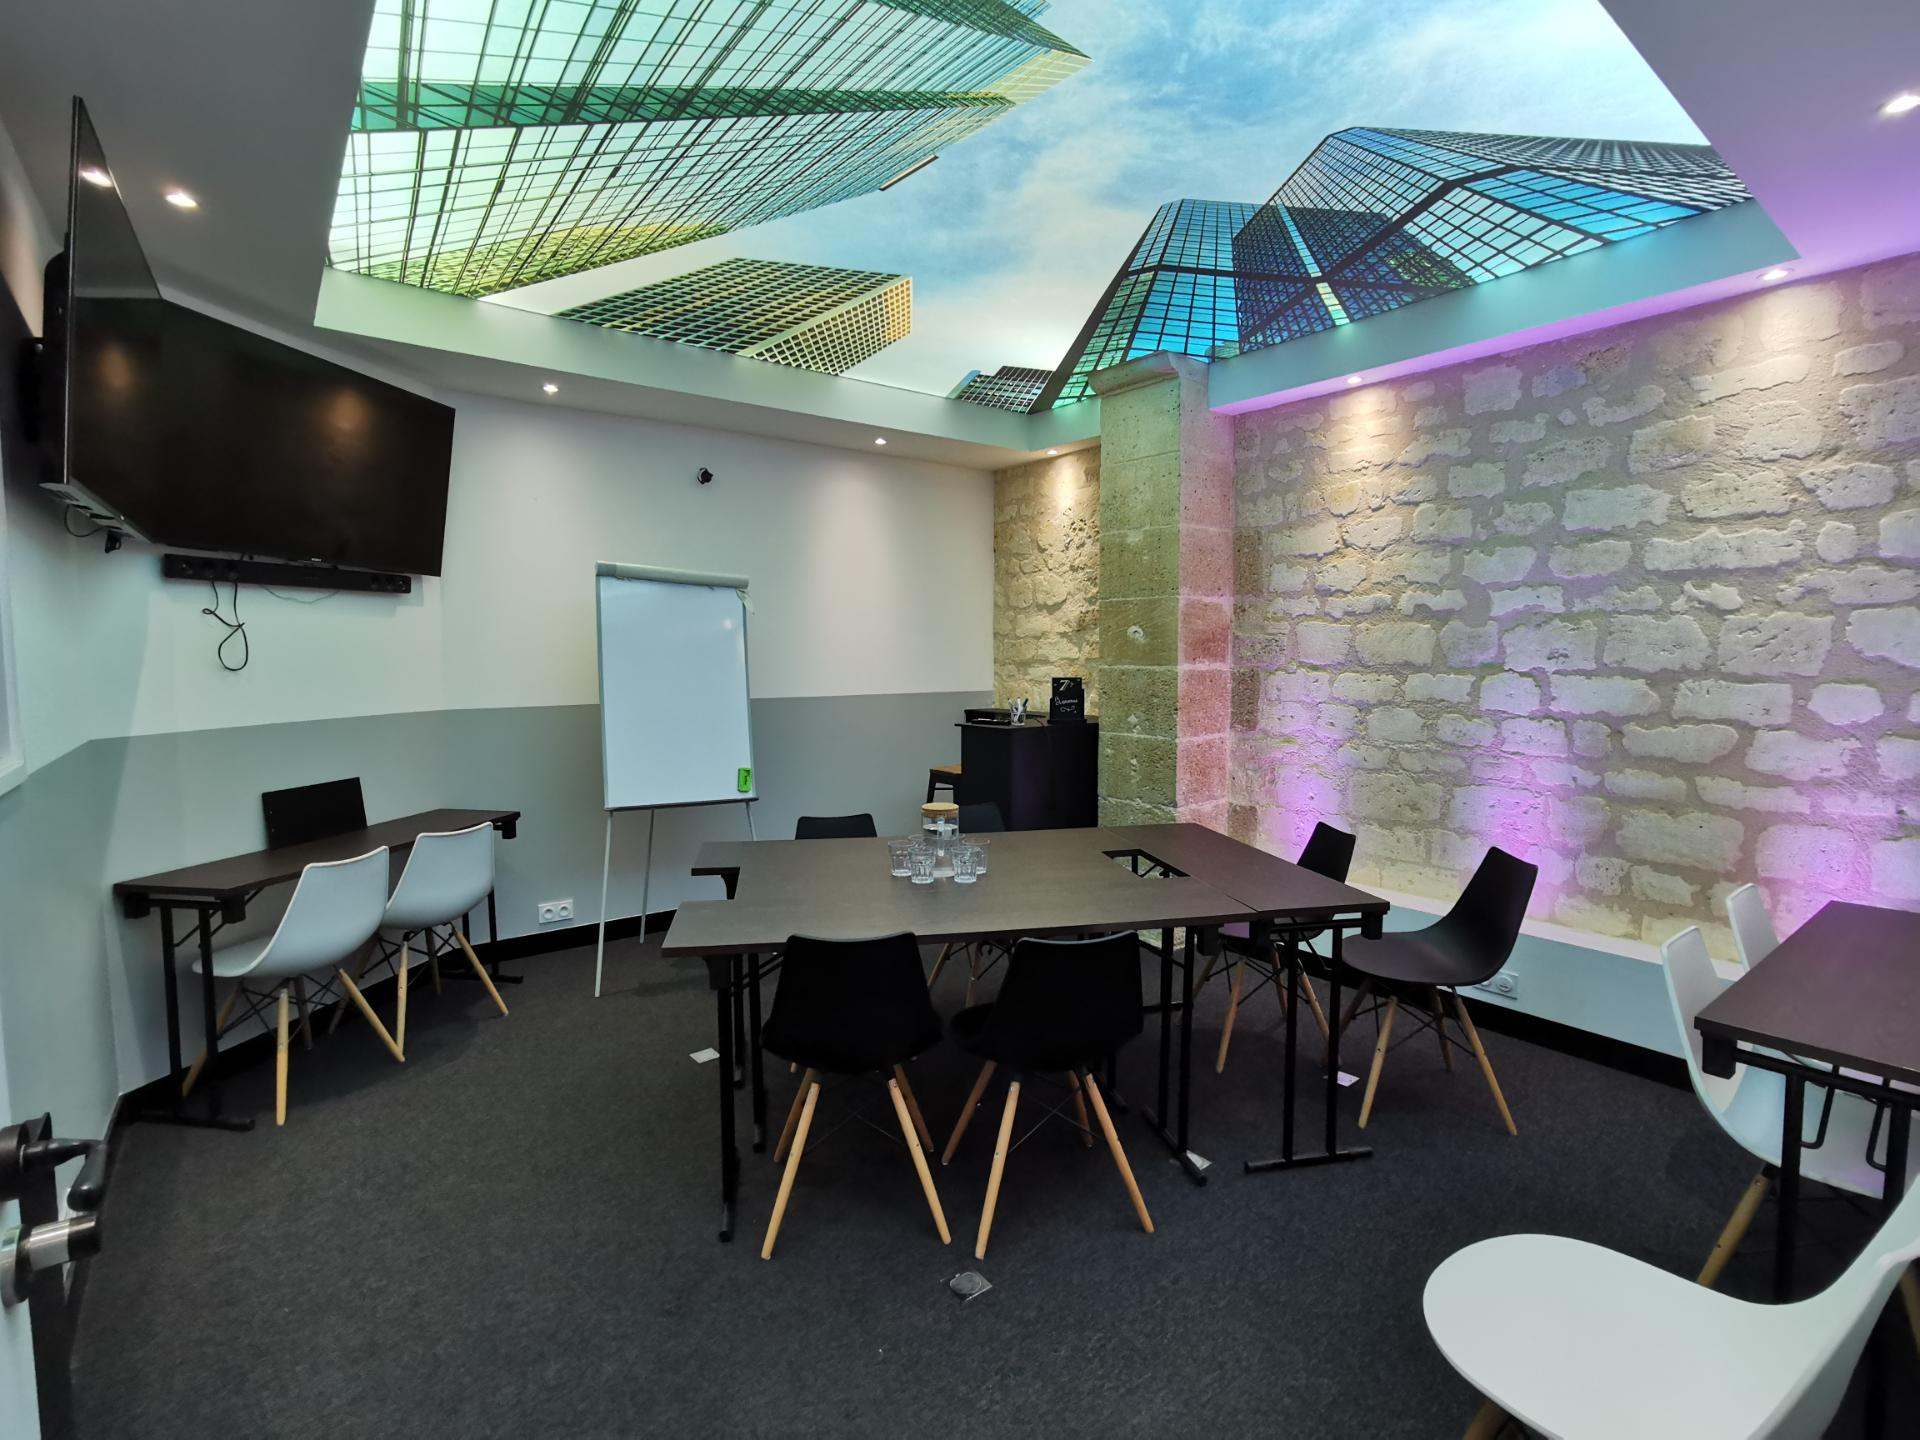 caption/coworking-salle-de-reunion-bordeaux-urbidesk-jqef.jpg